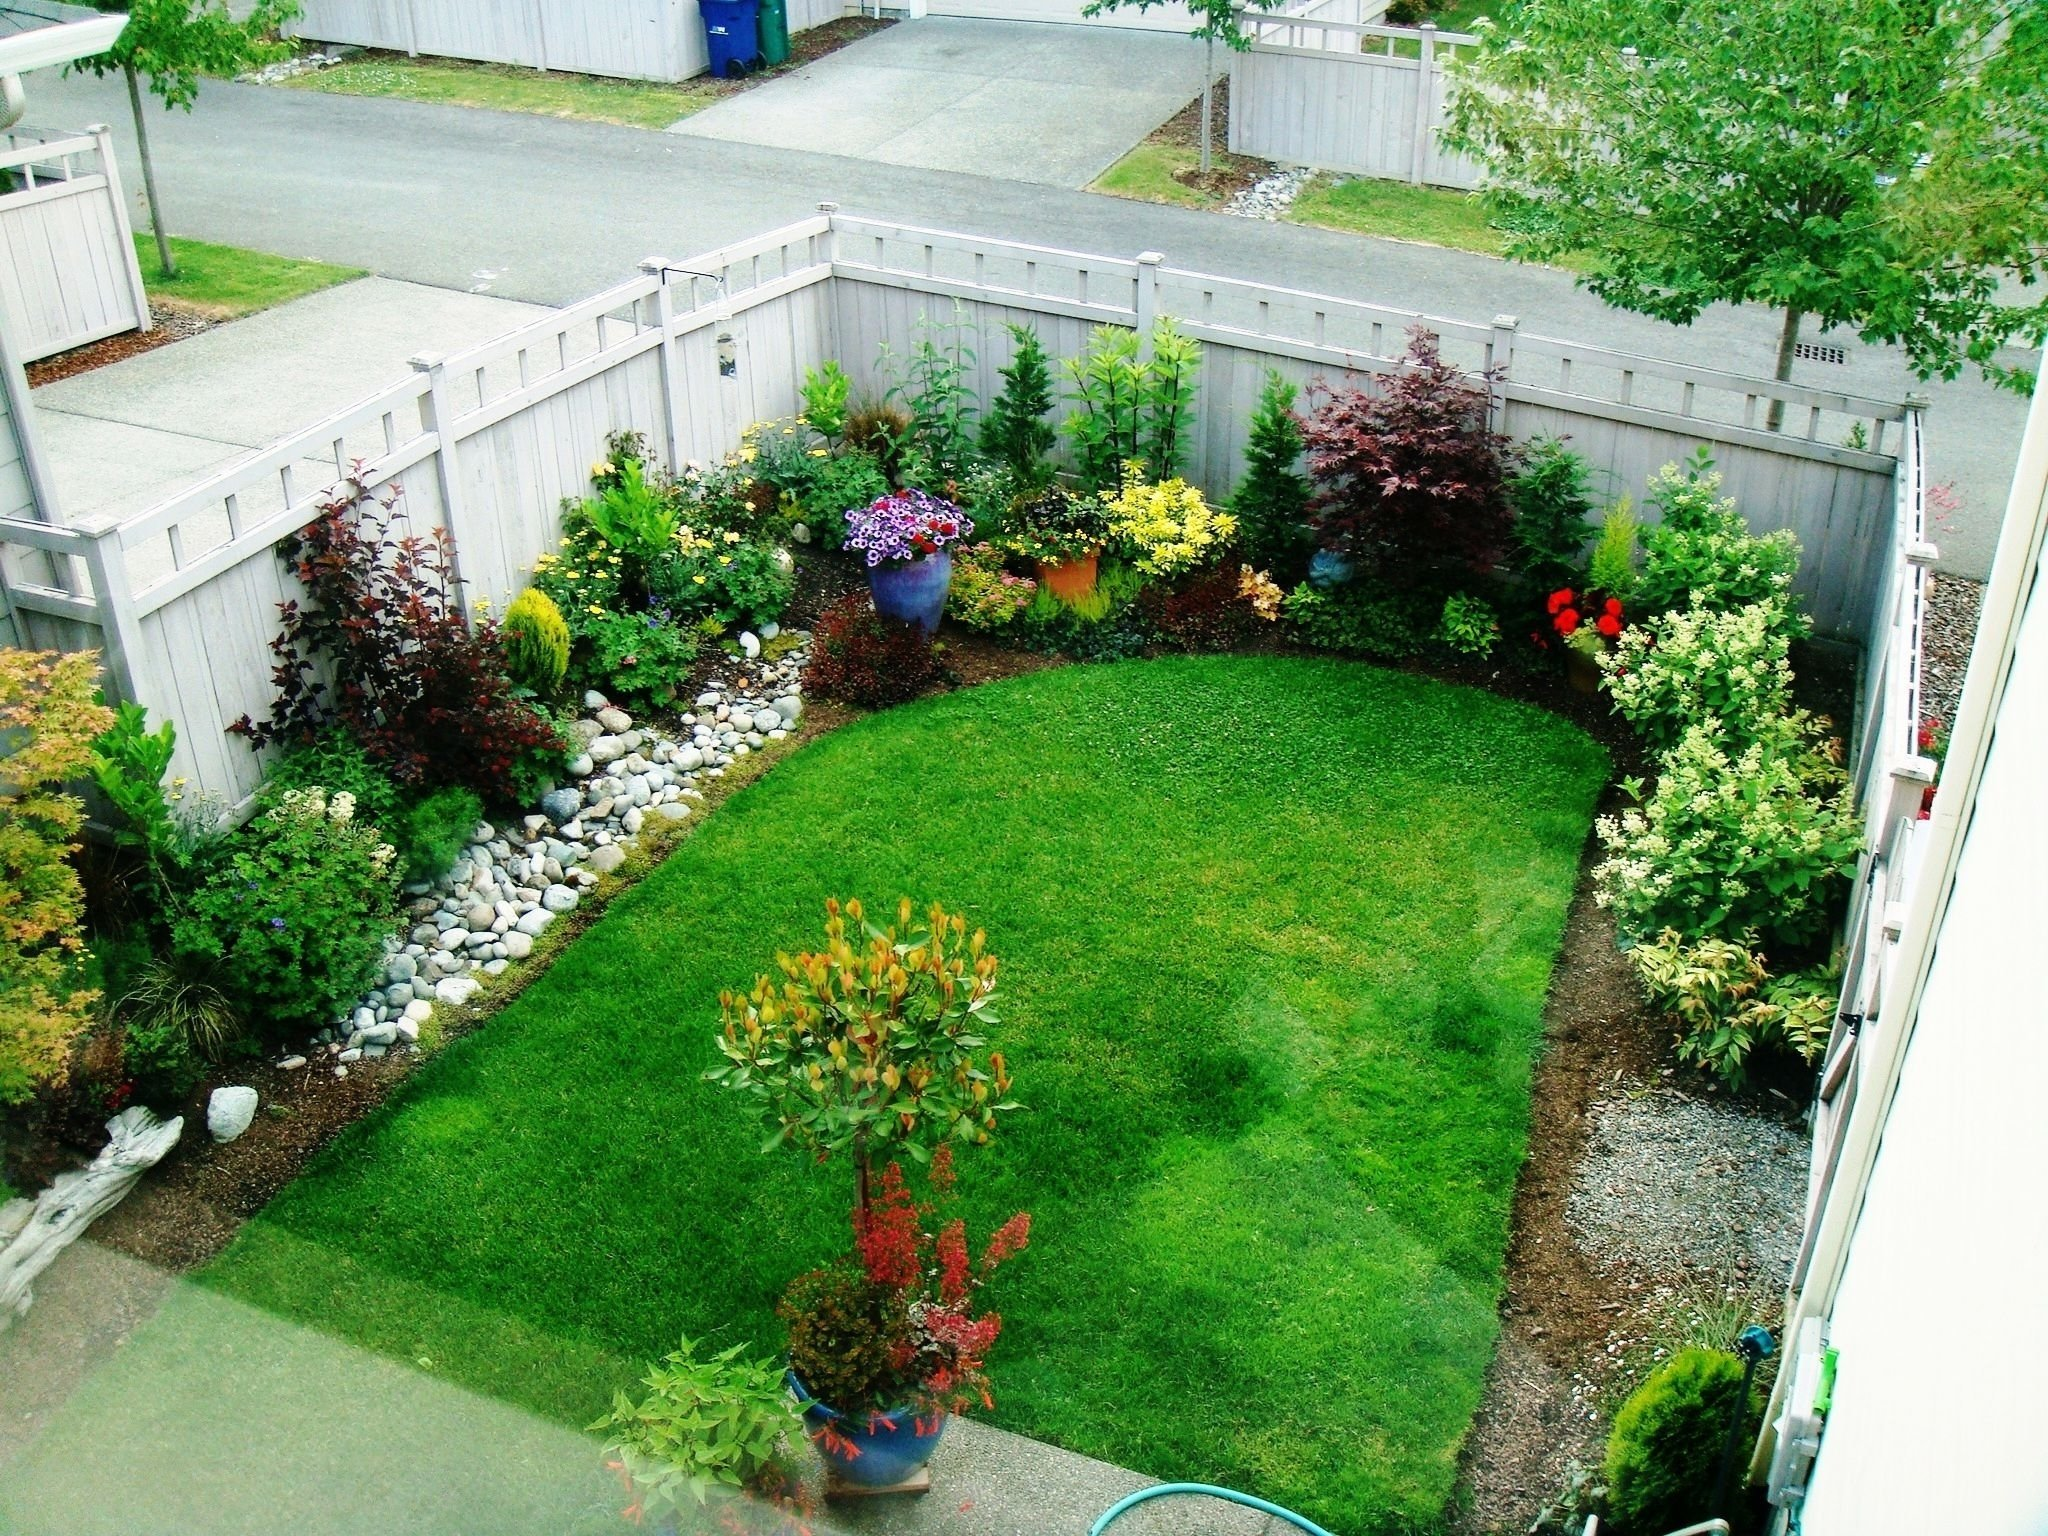 10 Cute Garden Ideas For Small Yards 18 garden design for small backyard page 13 of 18 landscape 3 2020